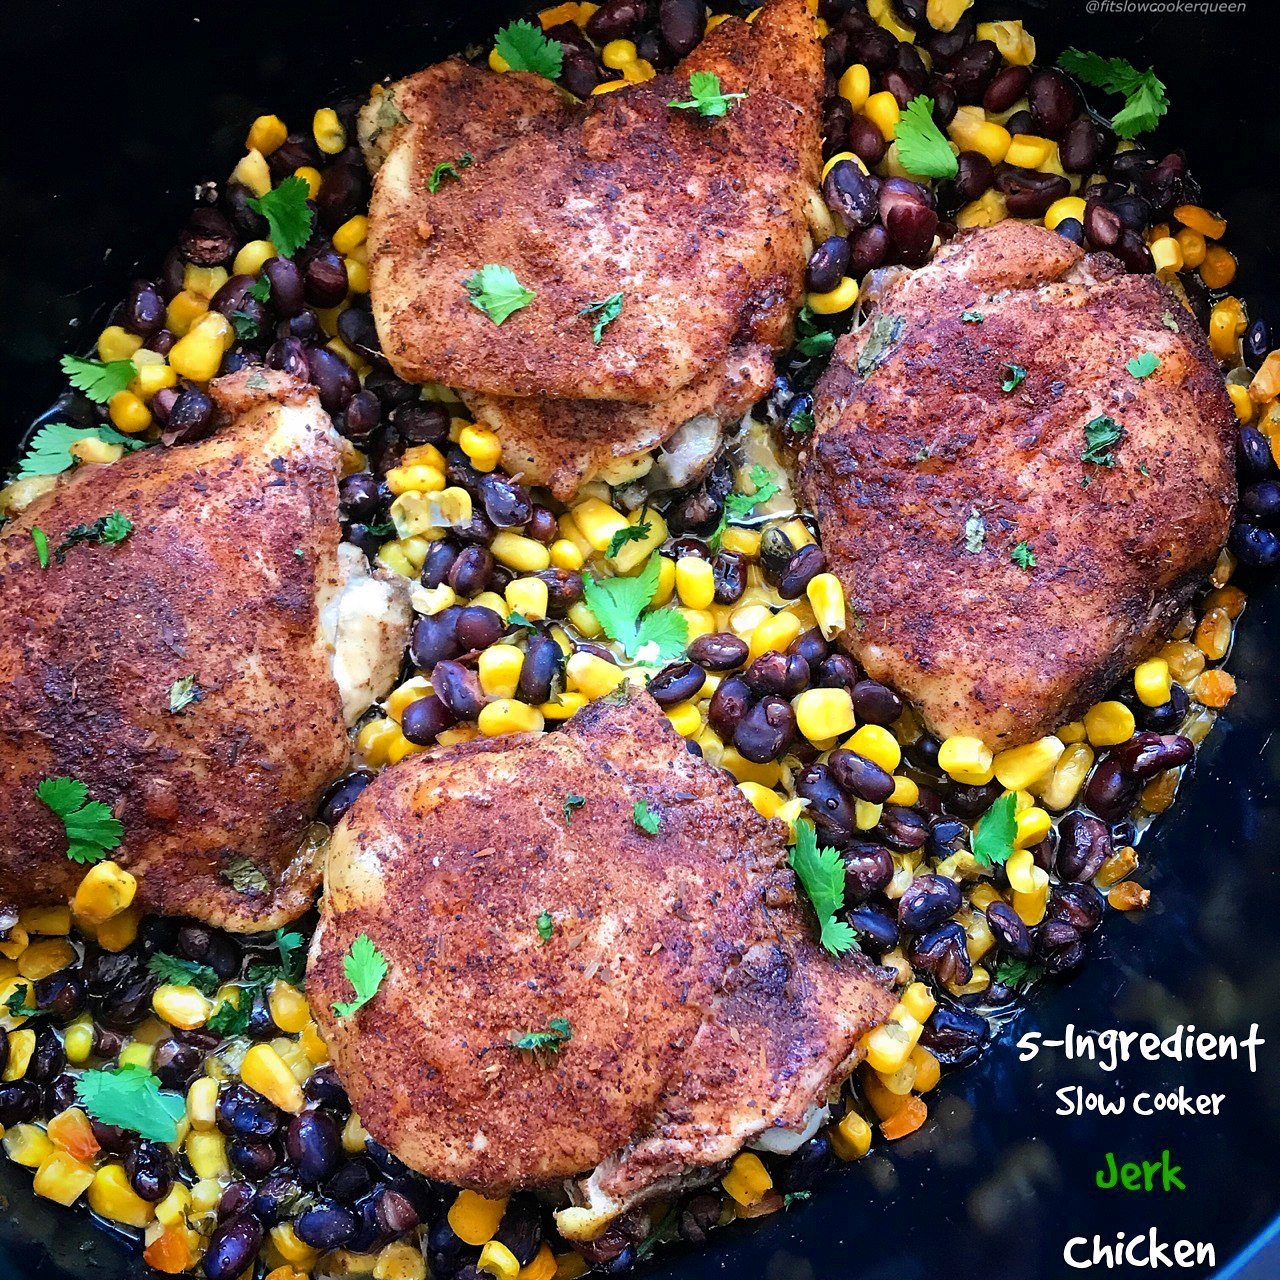 Jerk chicken, quick and in the slow cooker! Grab your favorite jerk seasoning (or use the one provided here) for this easy slow cooker recipe. With only 5 ingredients, you can pretty much use any cut of chicken and serve the finished product so many different ways.